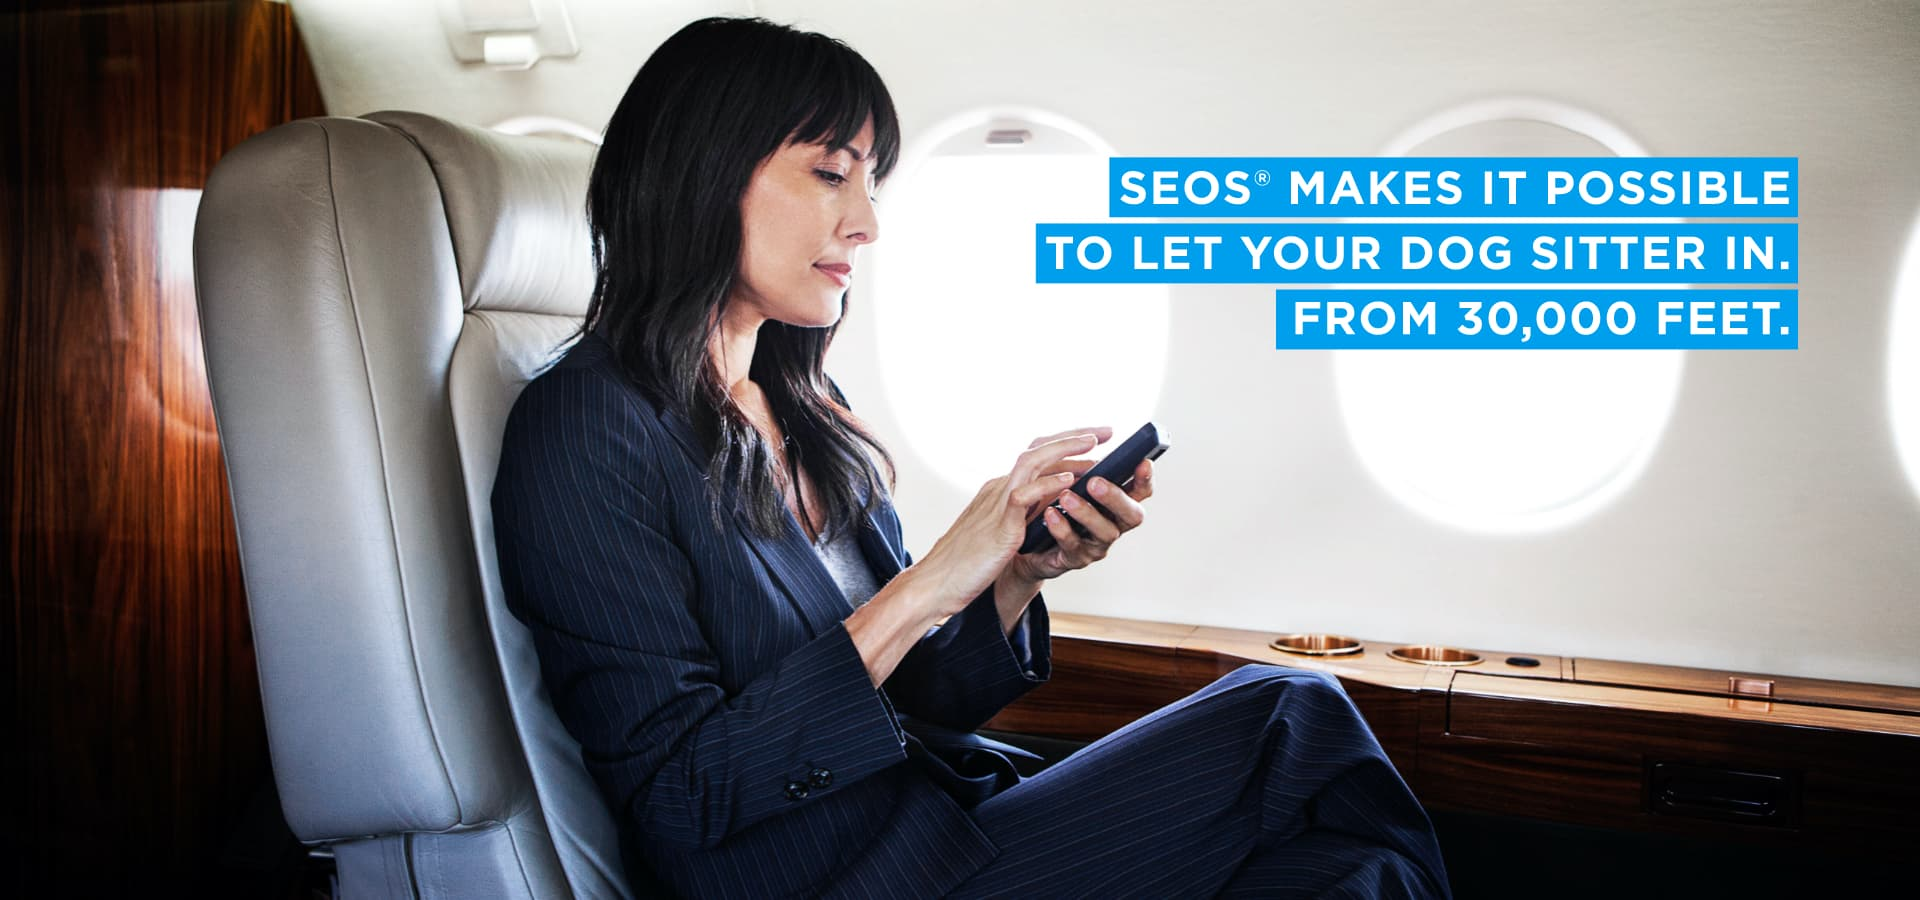 Woman using SEOS app from her airplane seat